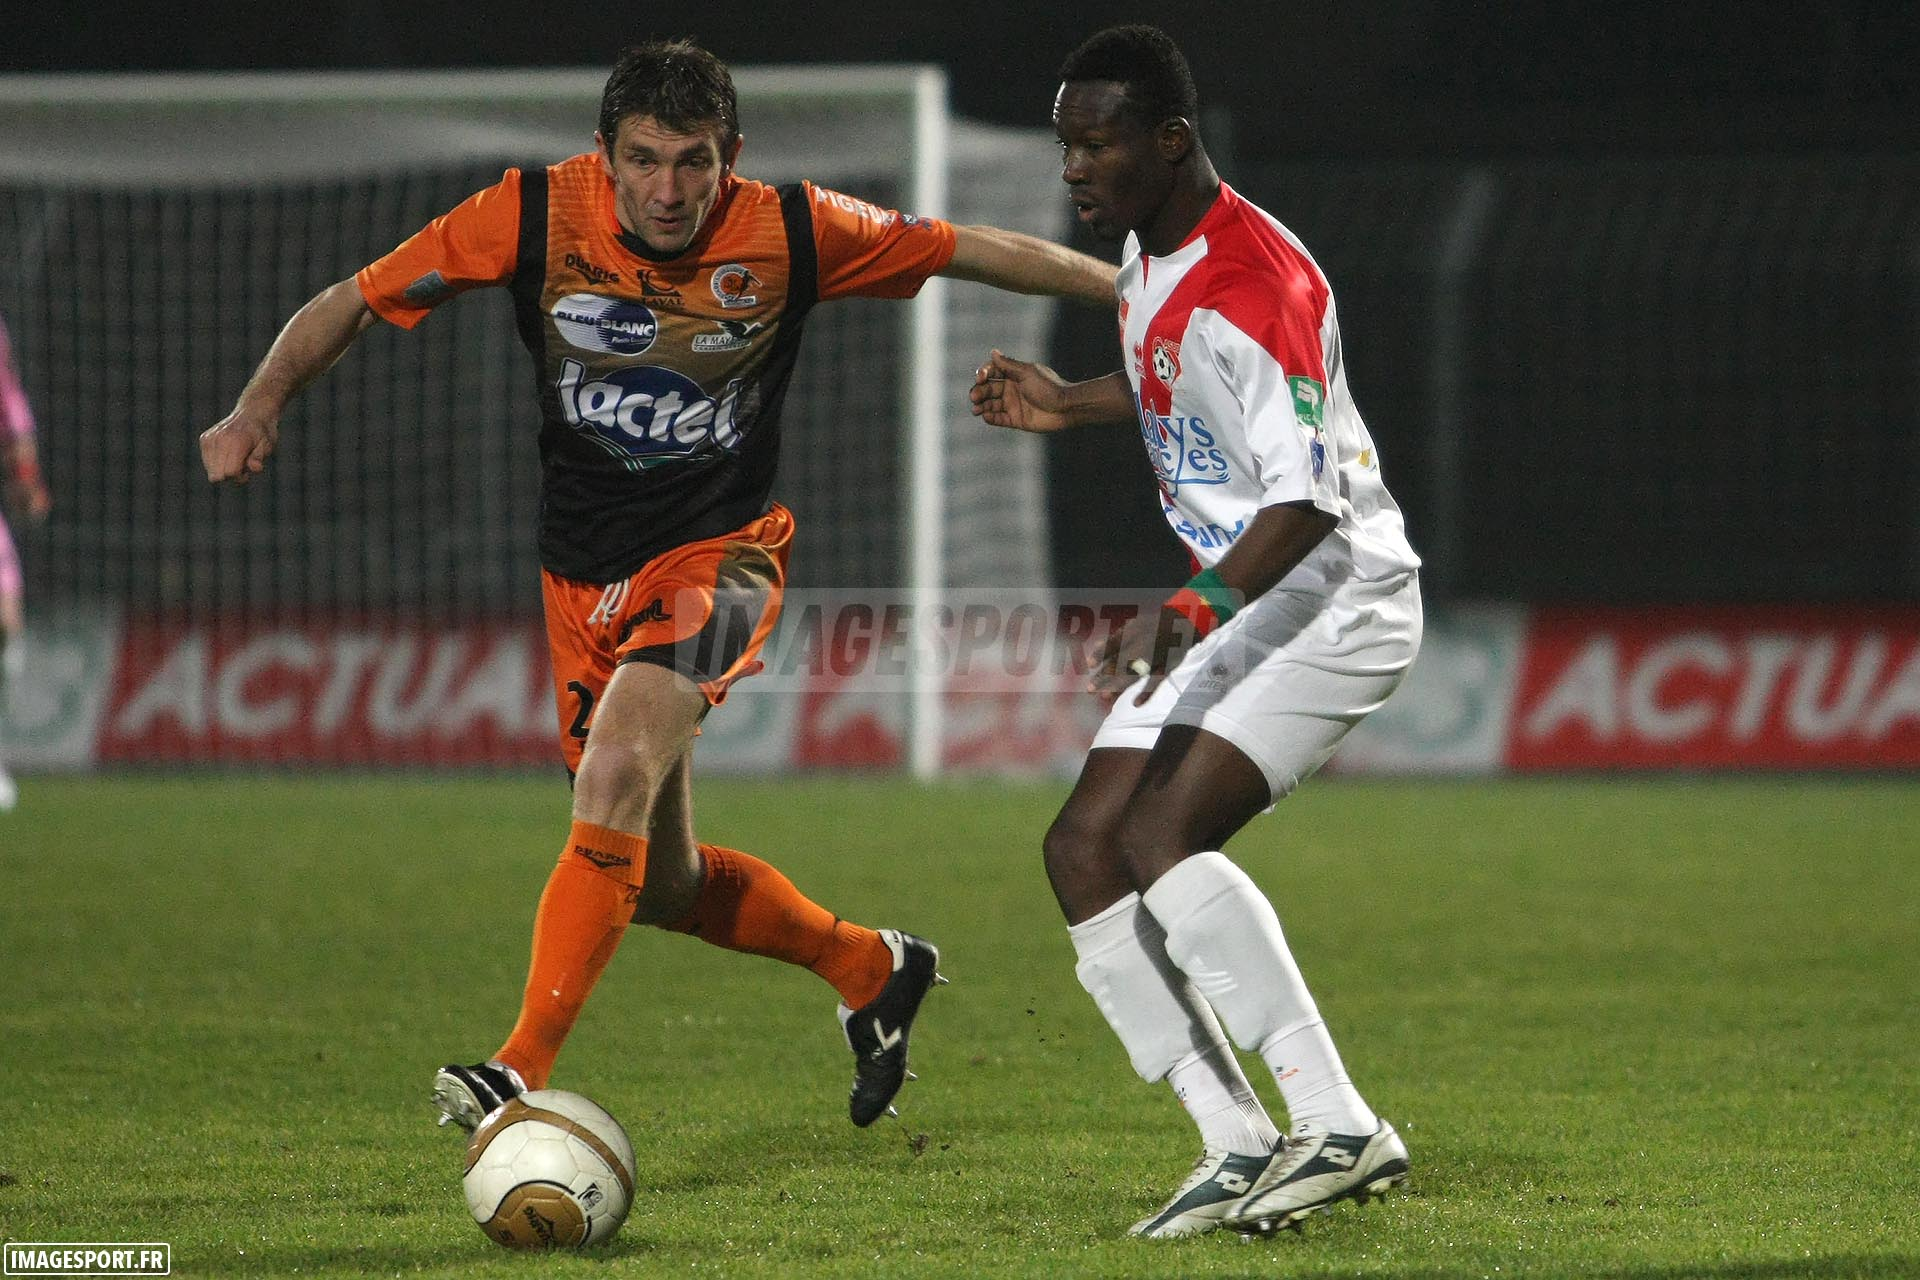 Stade Lavallois-AS Beauvais (1-0)